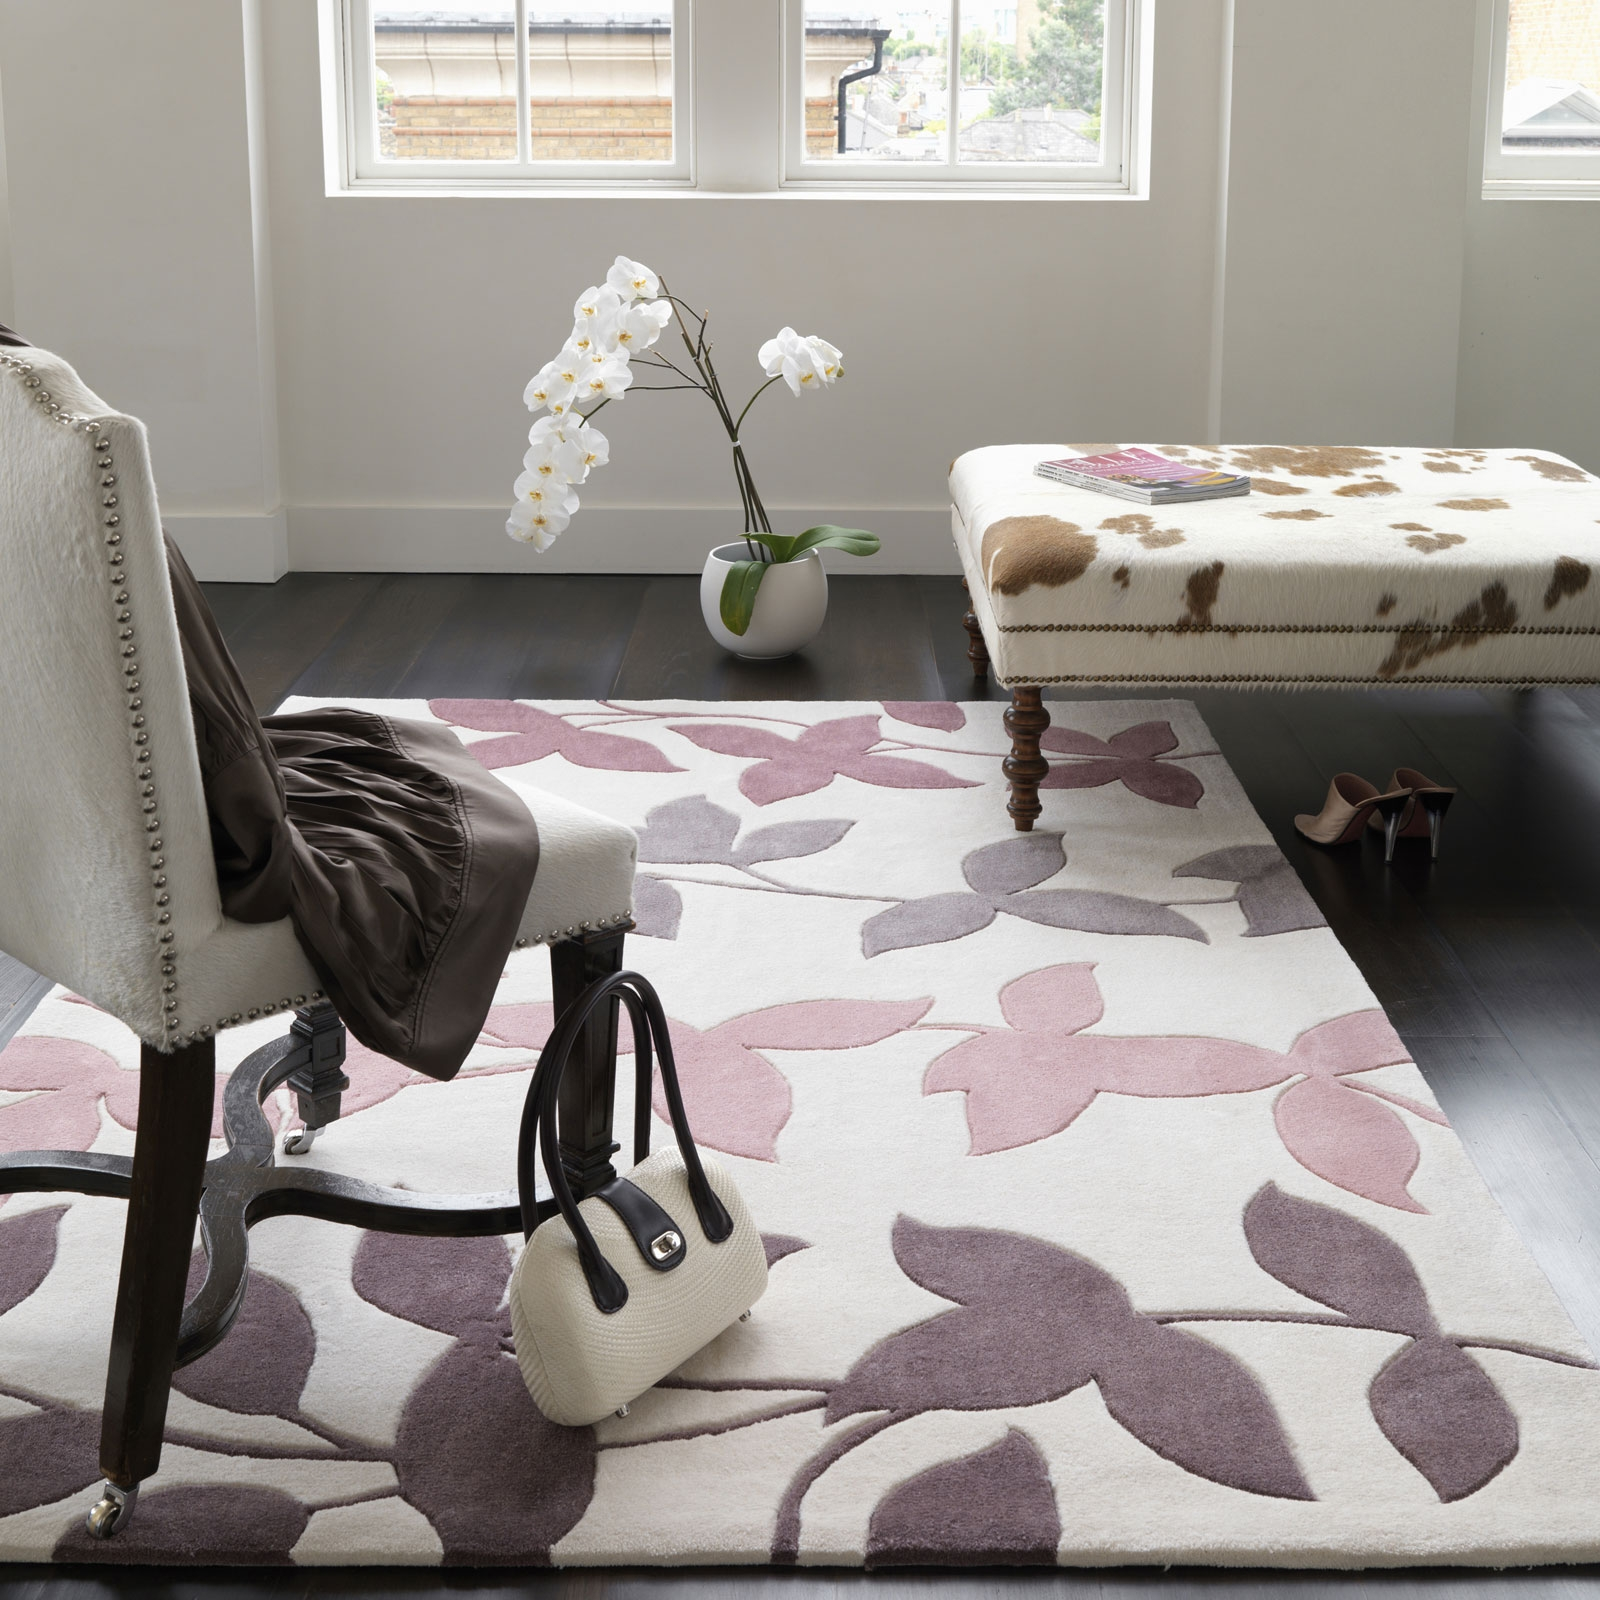 Harlequin Rugs Uk Roselawnlutheran Throughout Harlequin Rugs (Image 8 of 15)